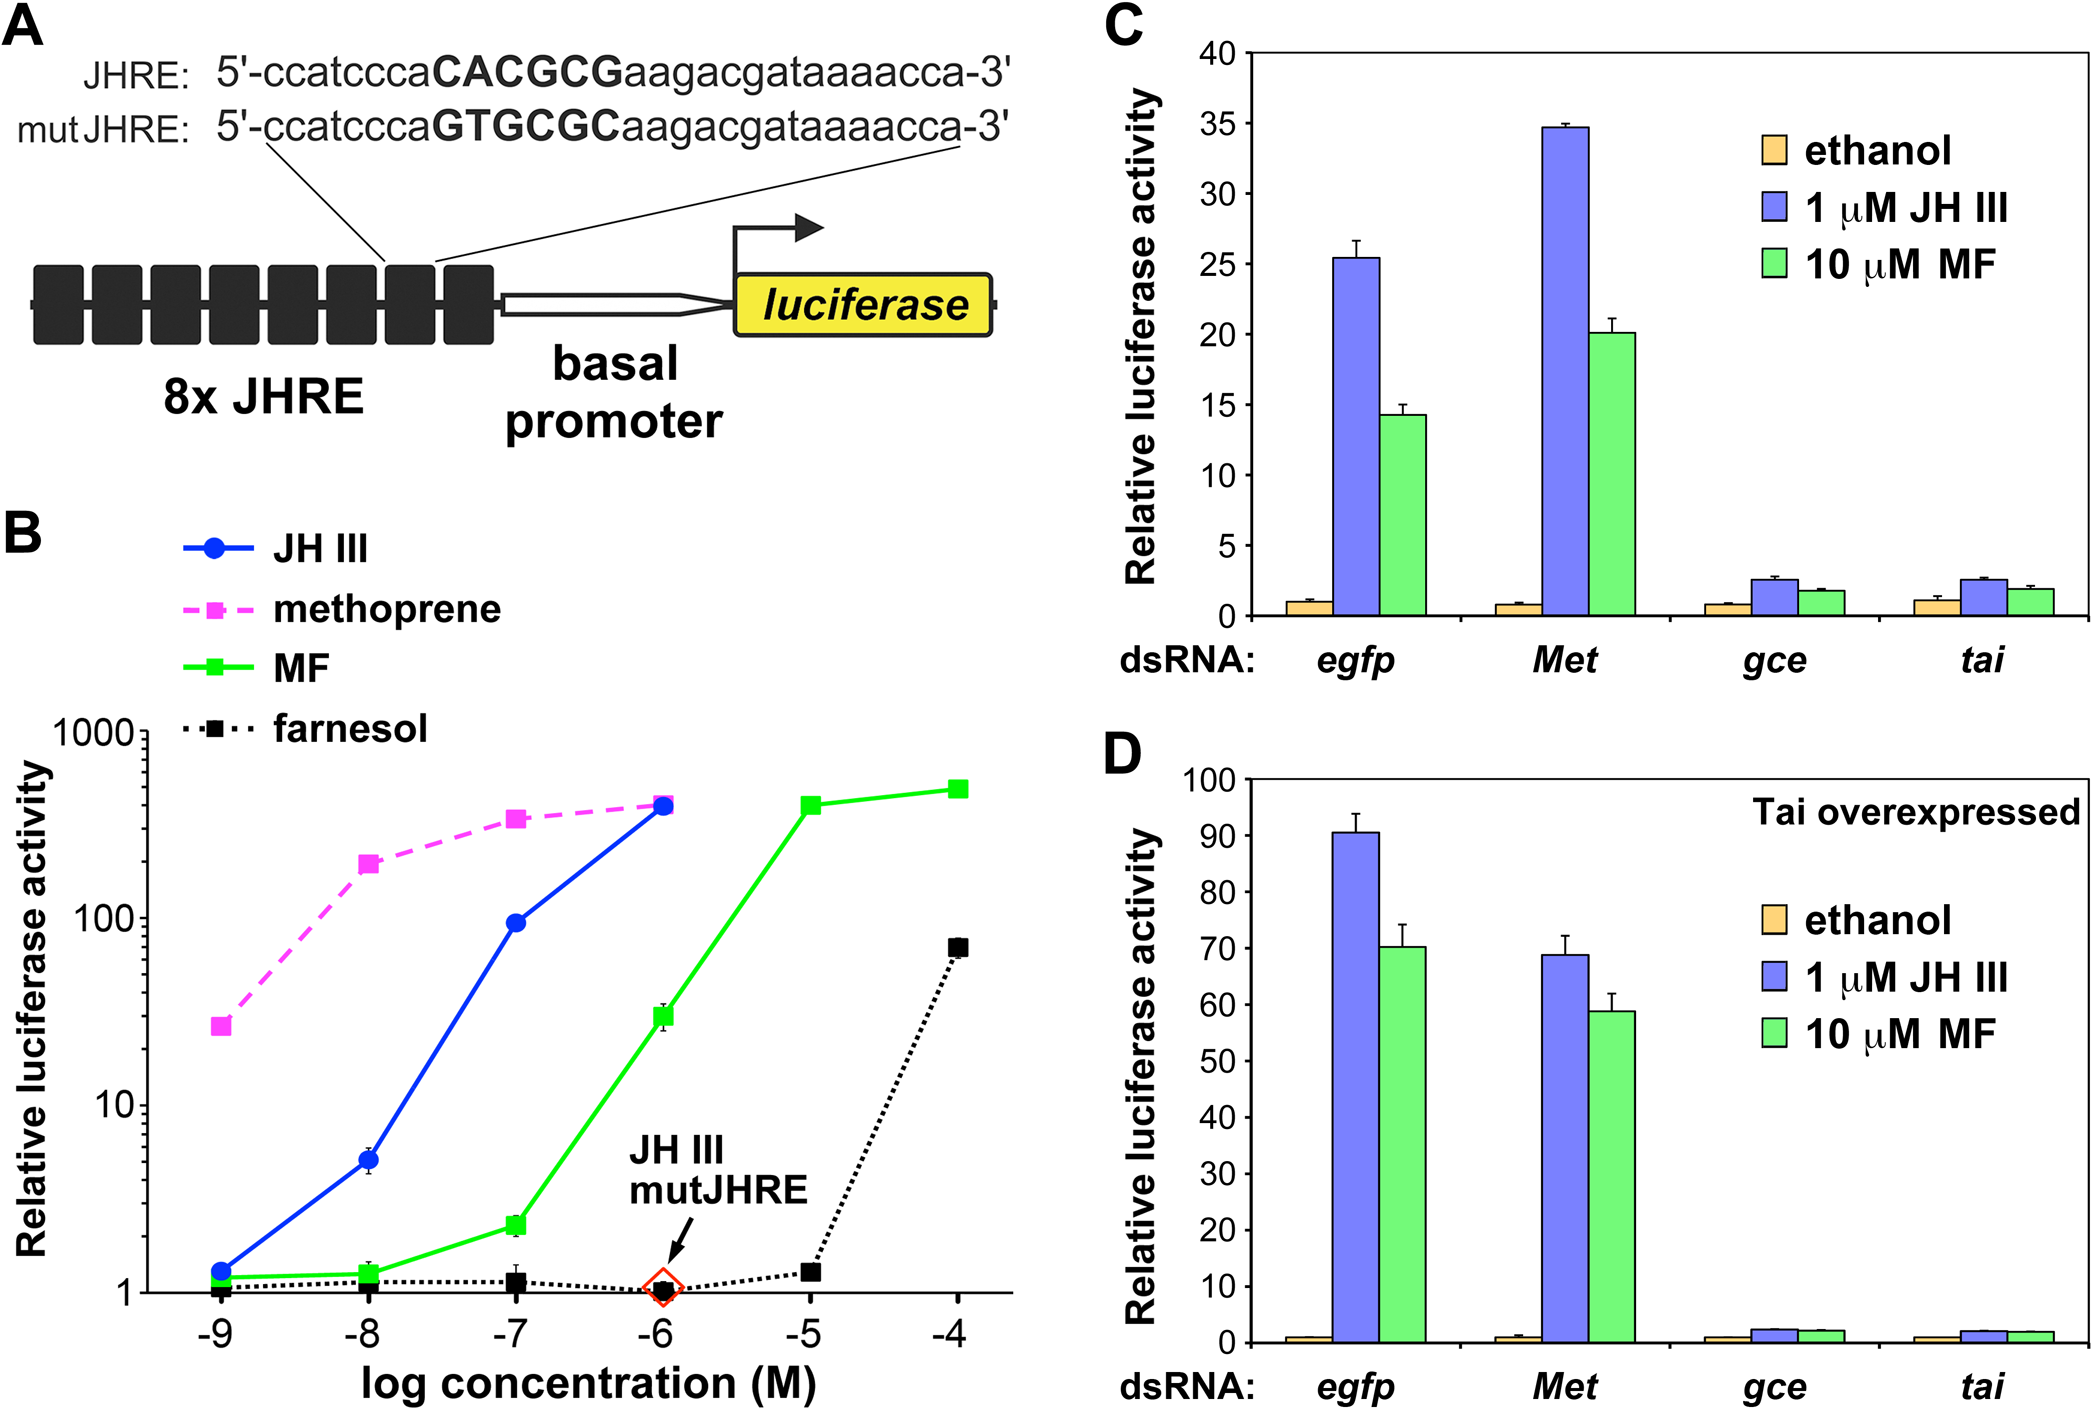 Transcriptional activation by JH III, methyl farnesoate (MF), and methoprene through Gce in <i>Drosophila</i> S2 cells.